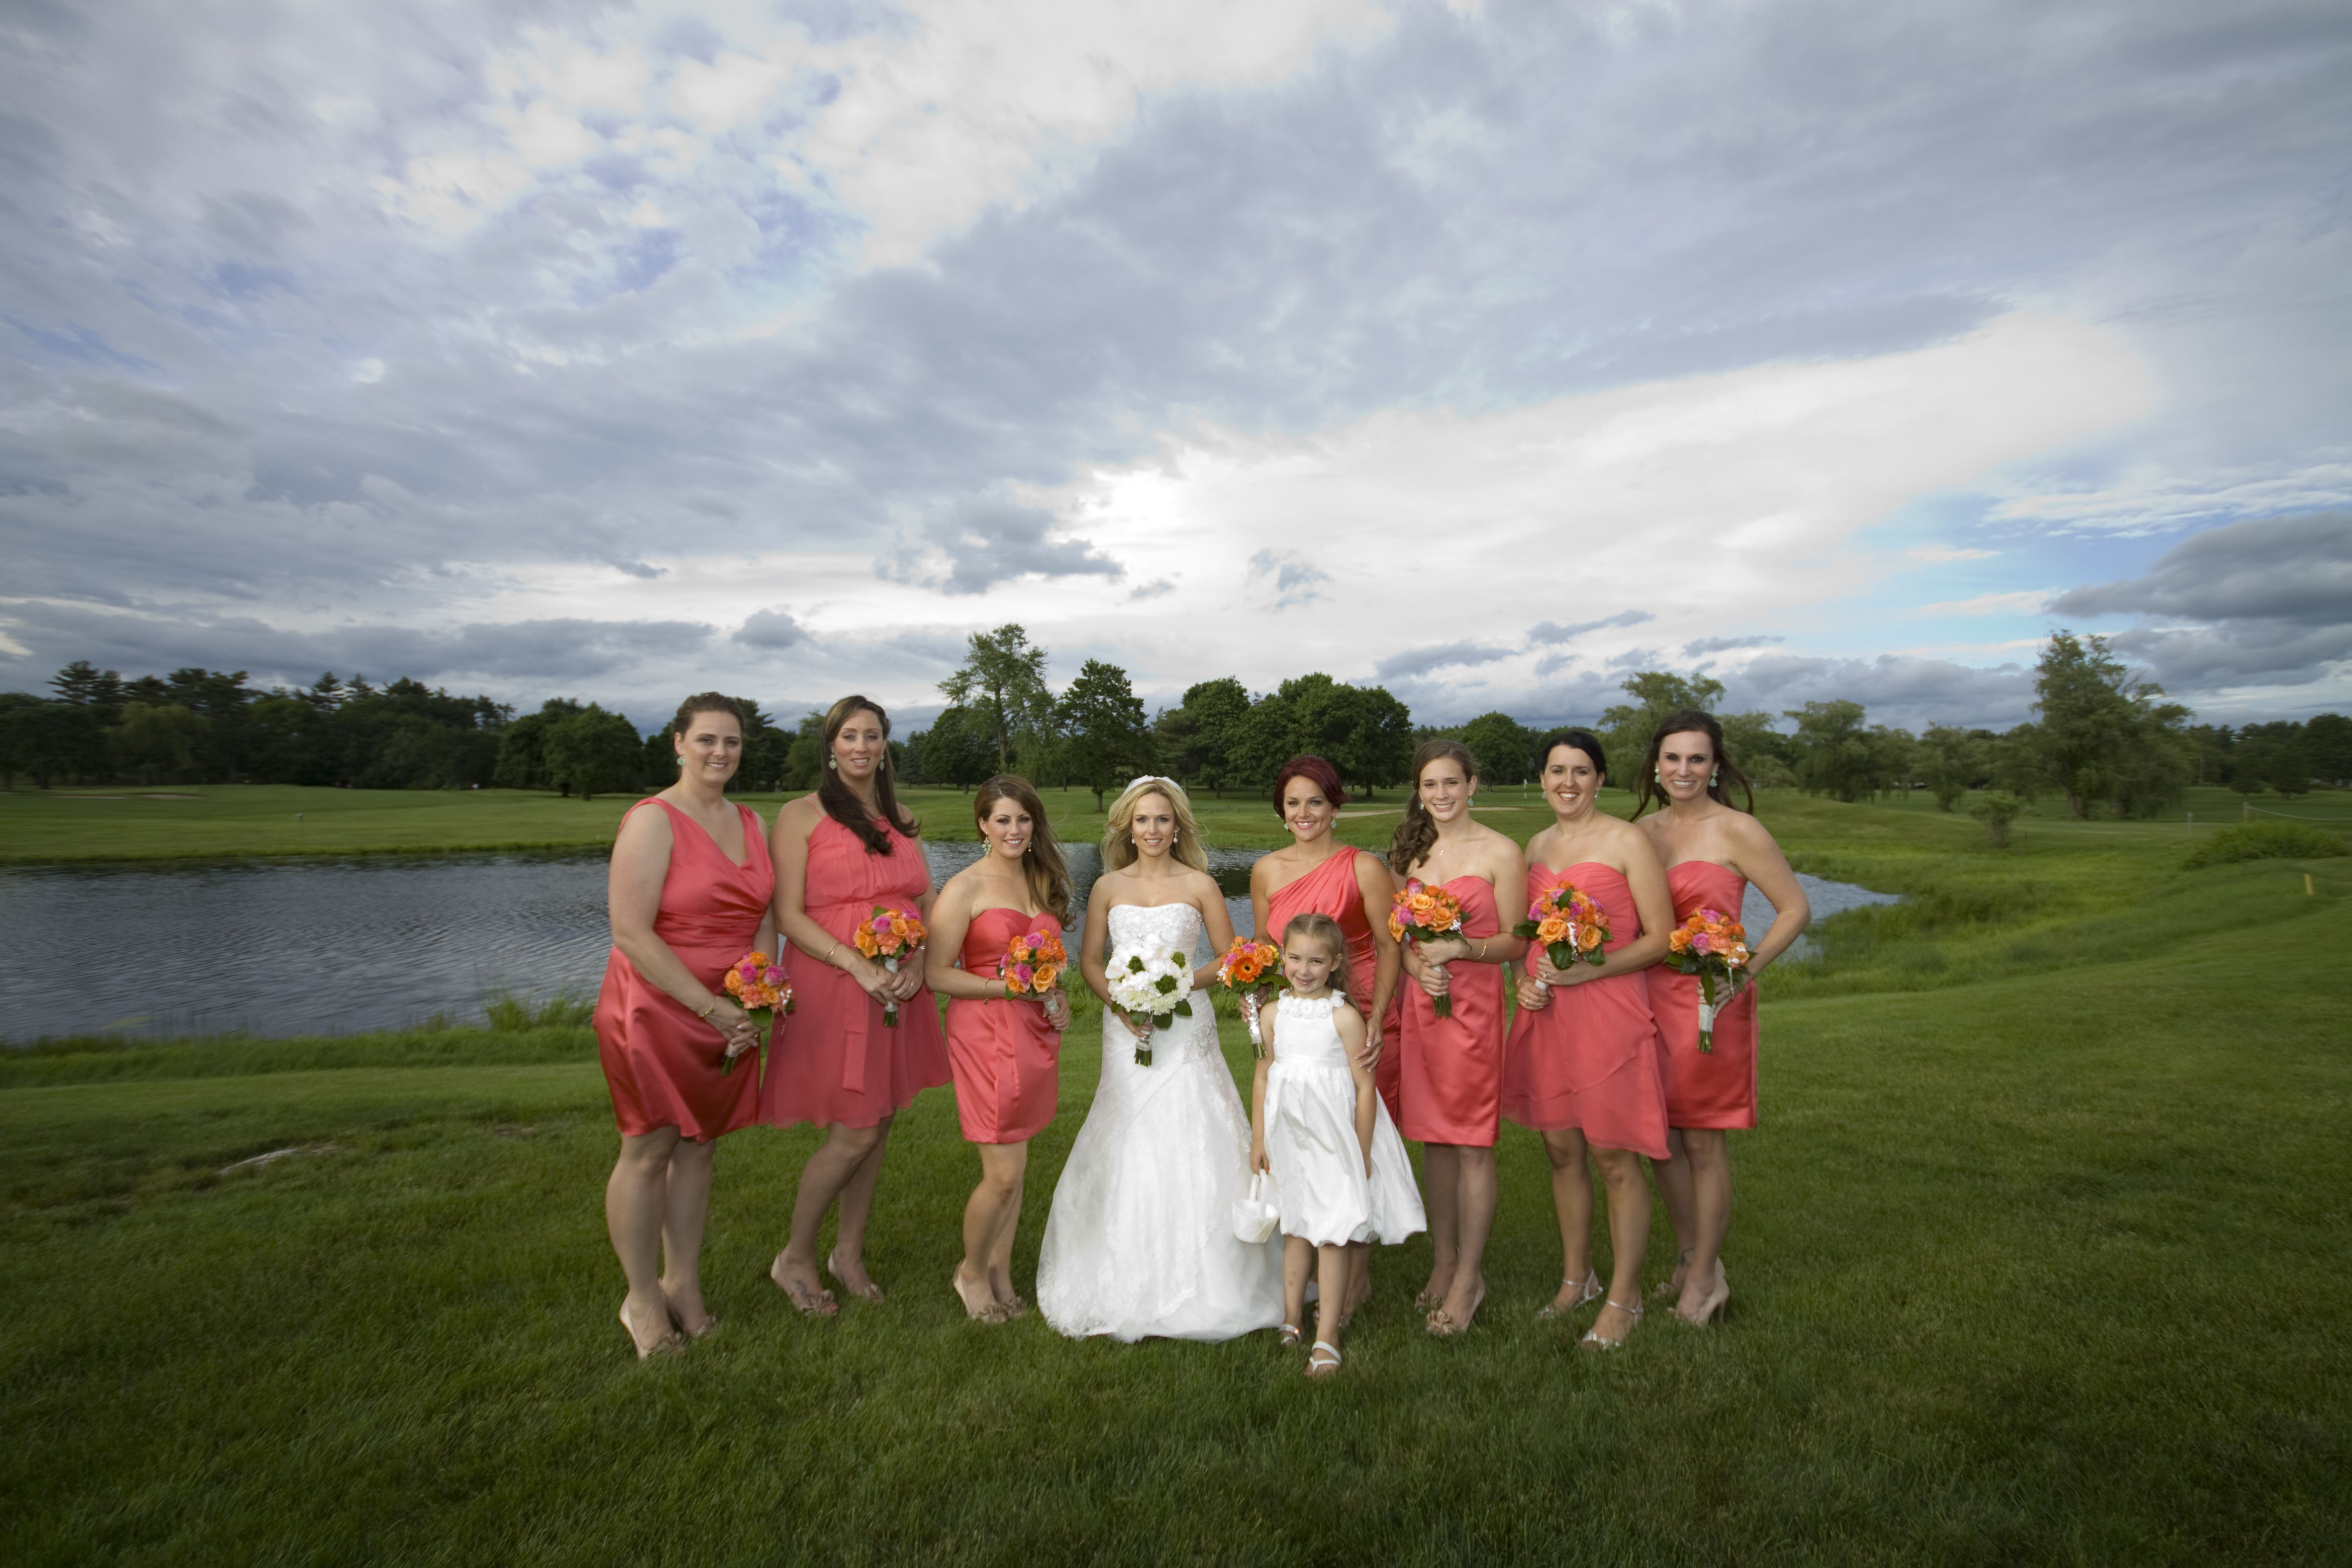 Guava bridesmaid dresses my best friends wedding pinterest bridesmaid guava bridesmaid dresses ombrellifo Gallery